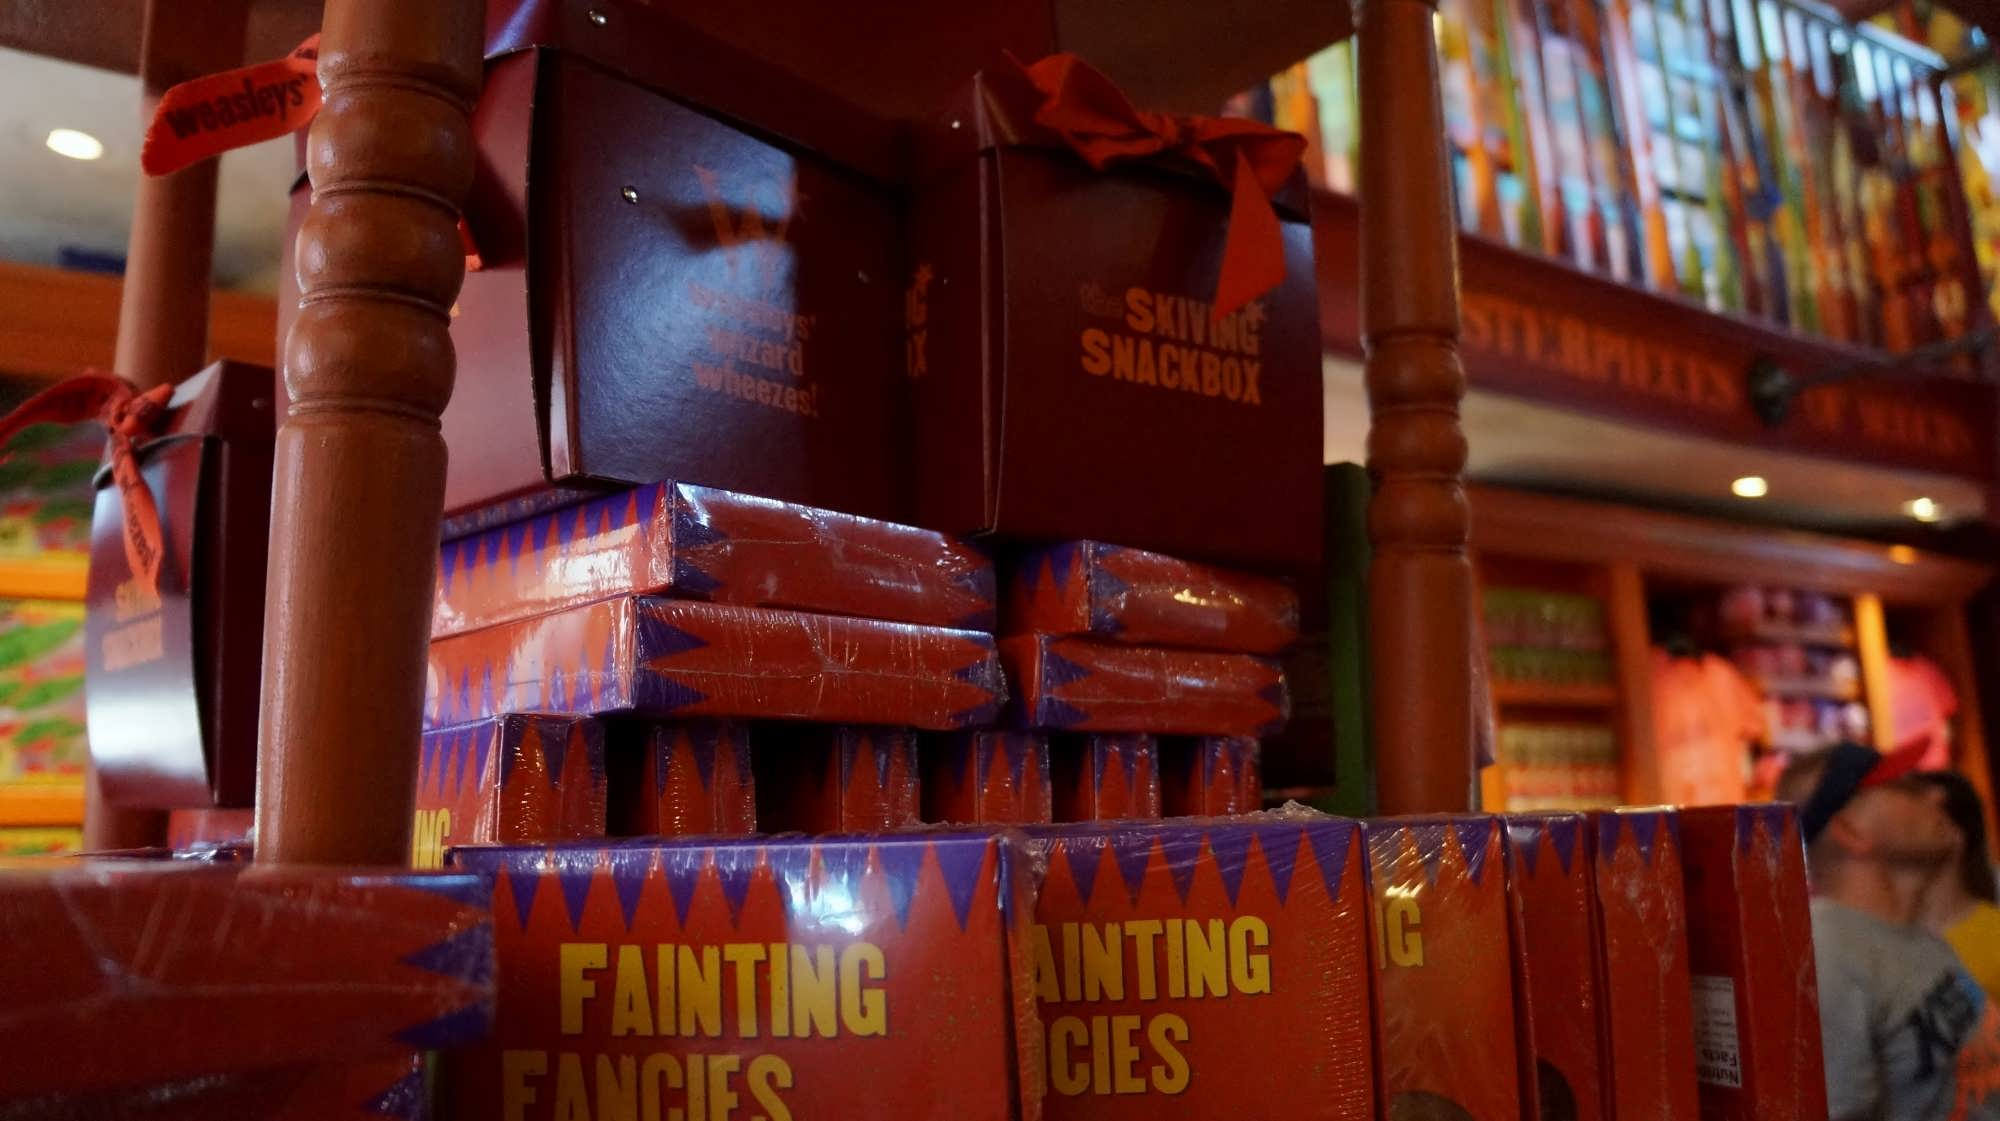 The Skiving Snackbox at Weasleys' Wizard Wheezes